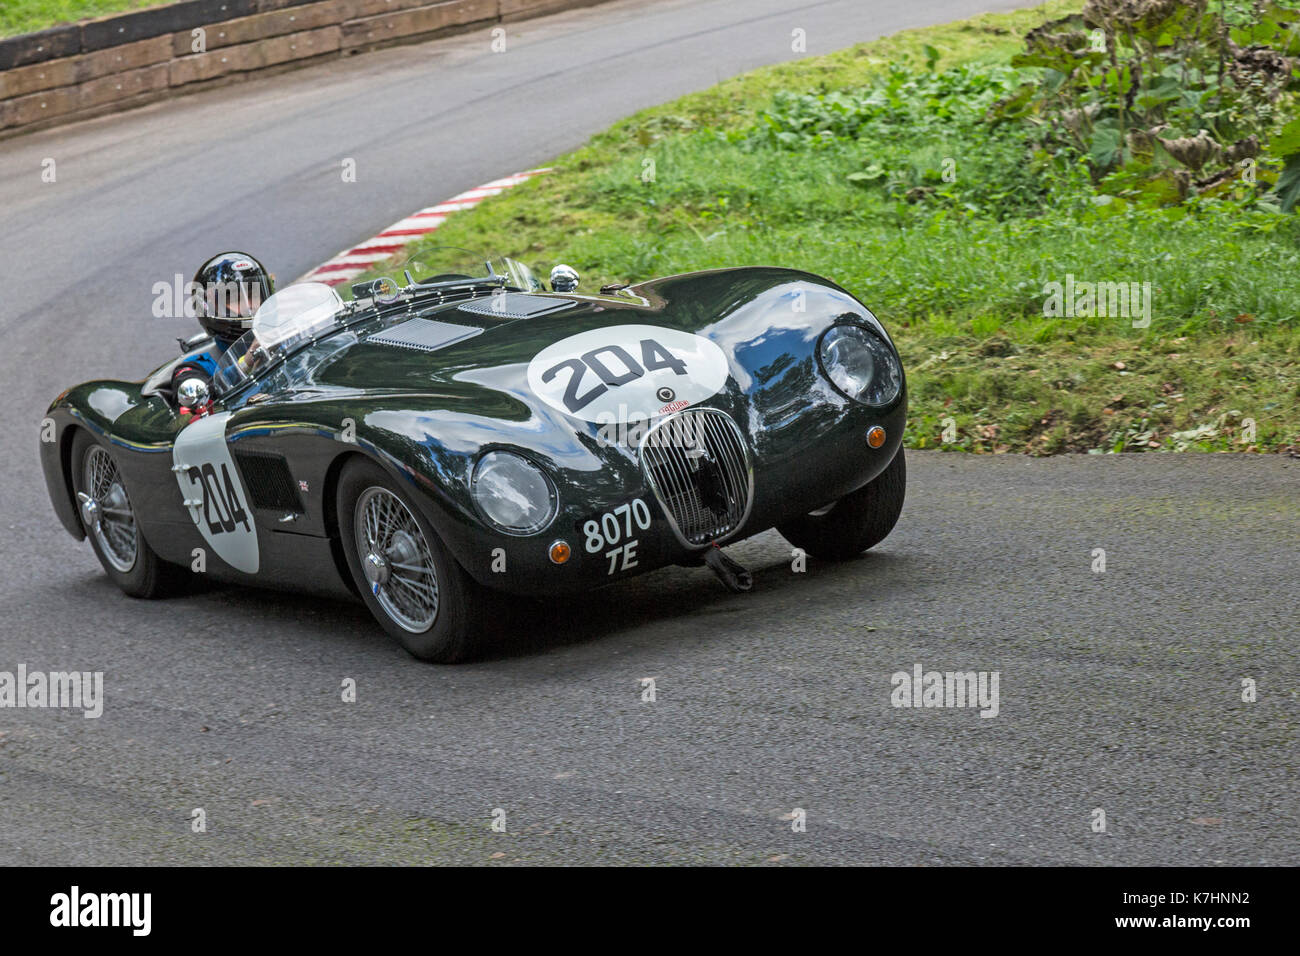 Worcestershire, UK. 16th September, 2017. A Jaguar C-Type Proteus being raced at the Autumn Speed Finale at Shelsley Stock Photo